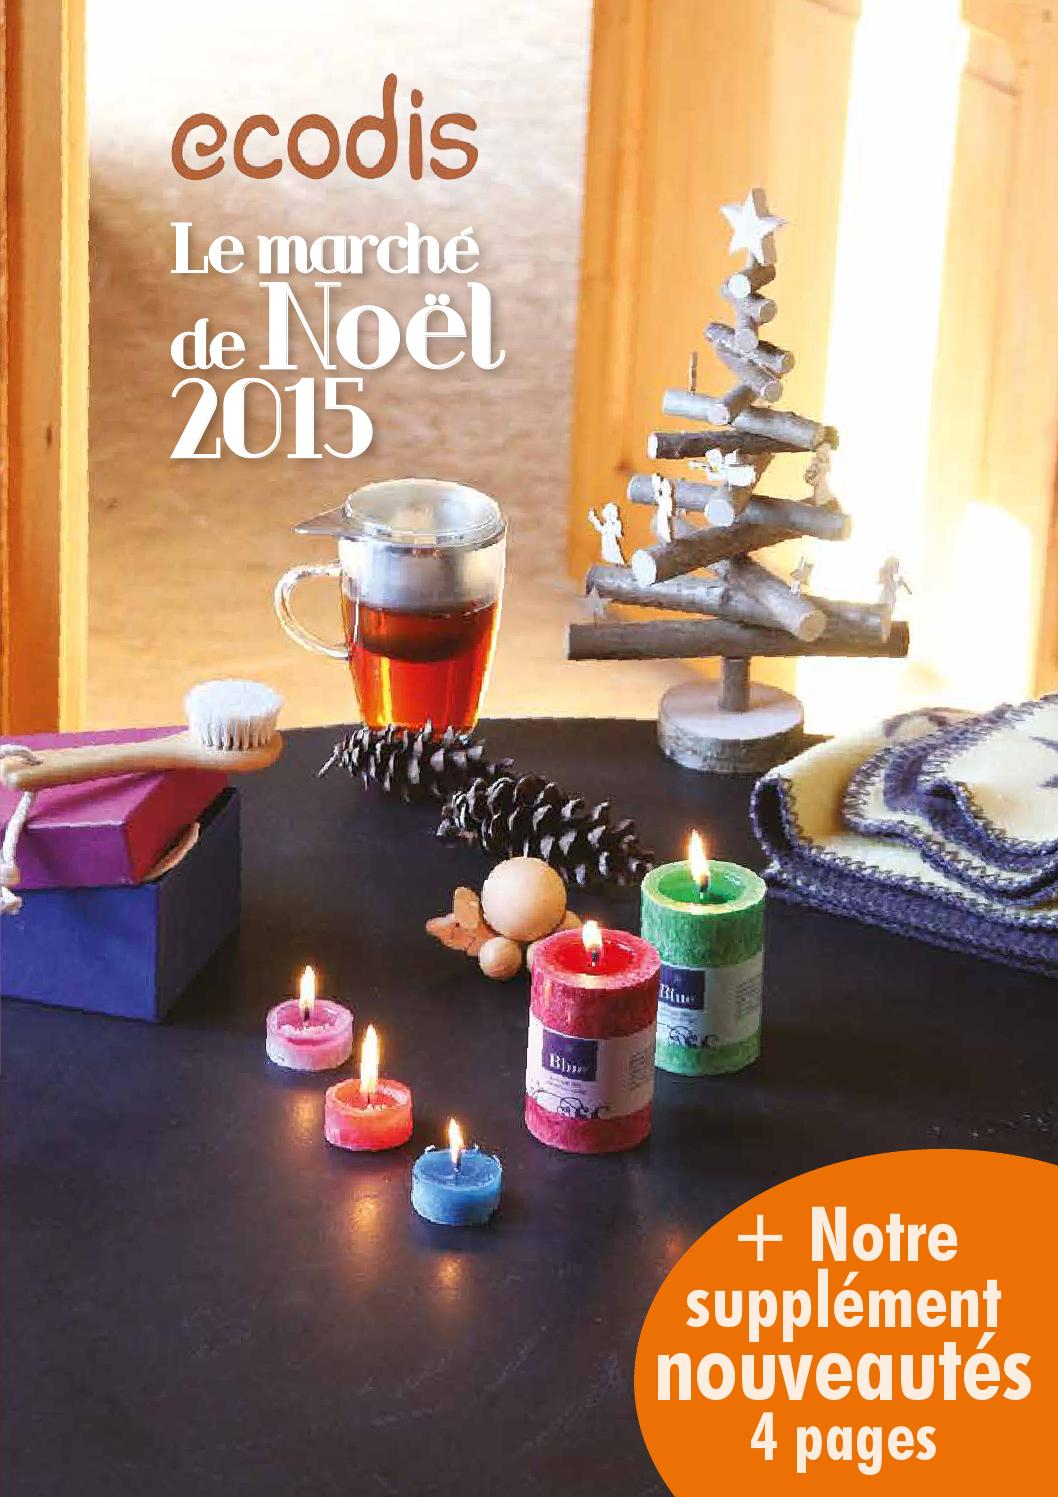 catalogue noel 2015 web by ecodis issuu. Black Bedroom Furniture Sets. Home Design Ideas